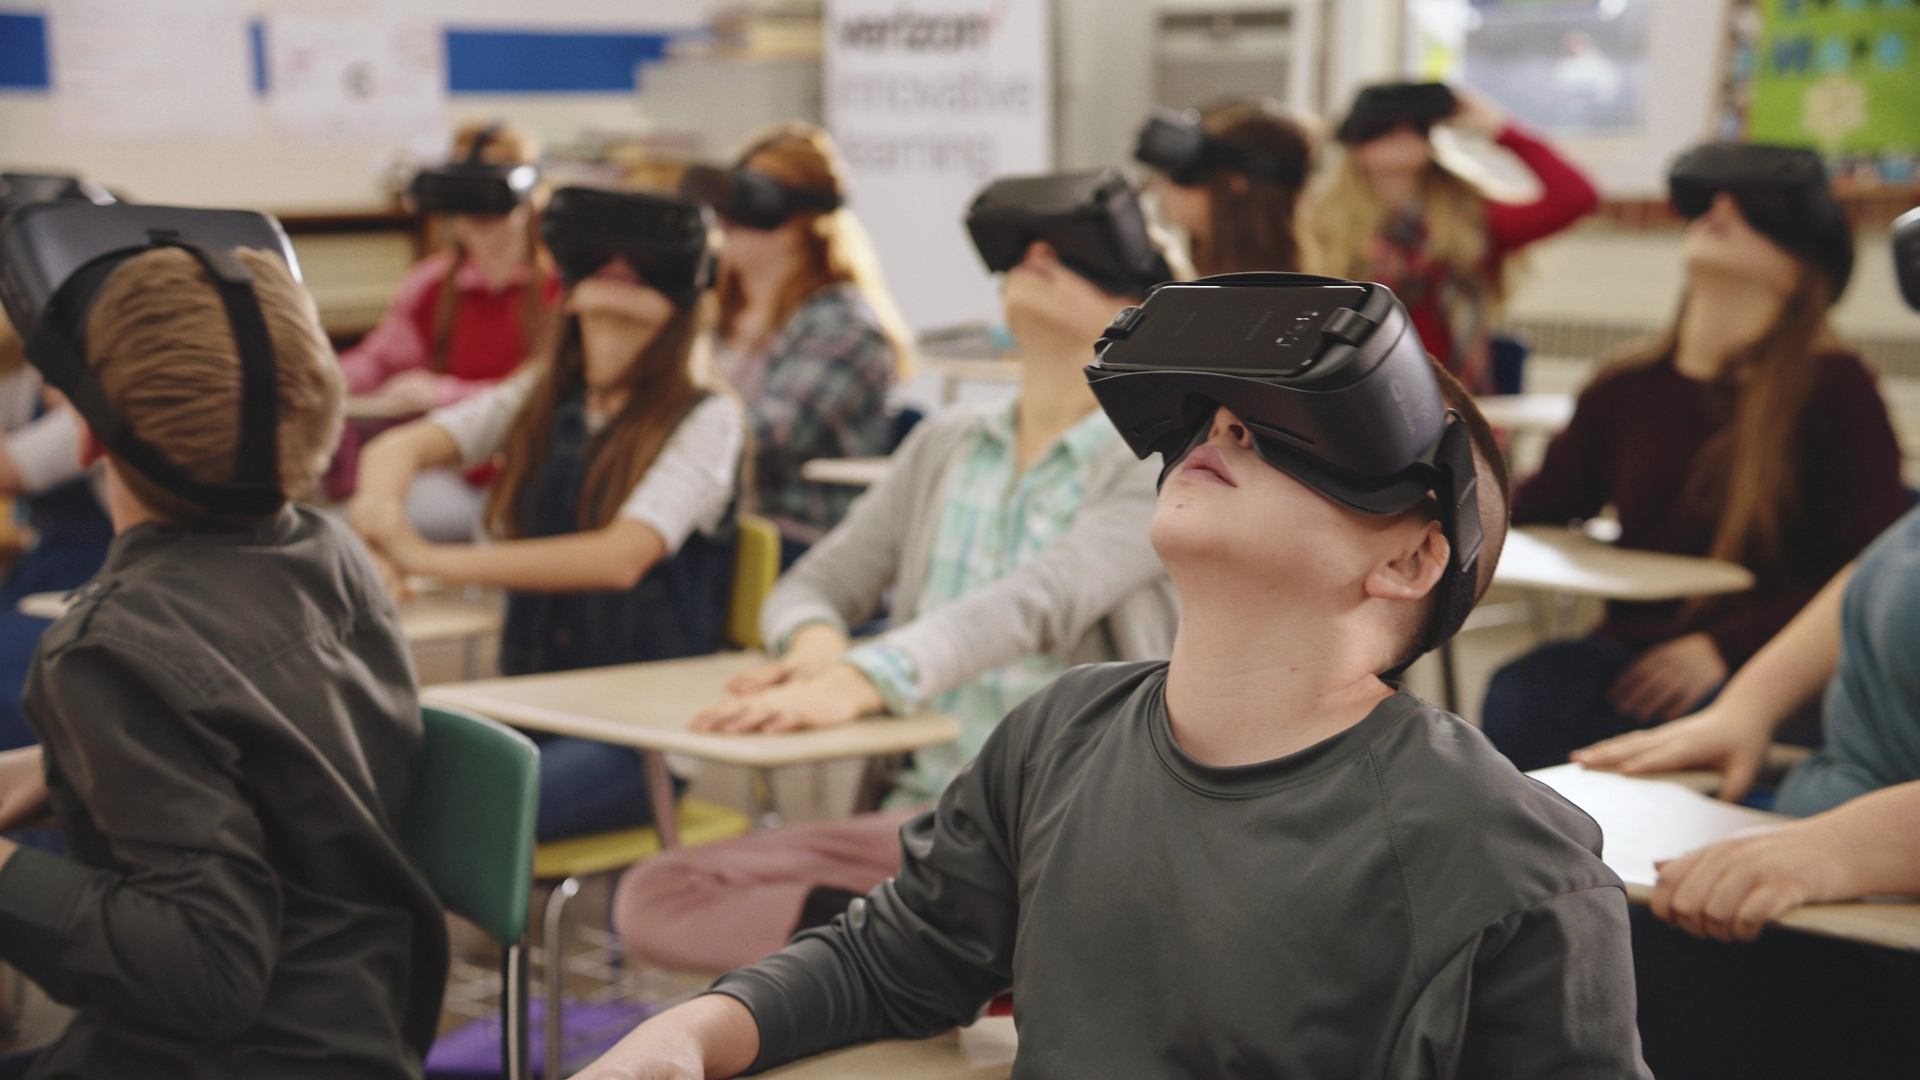 Student on VR Headset (image 2)